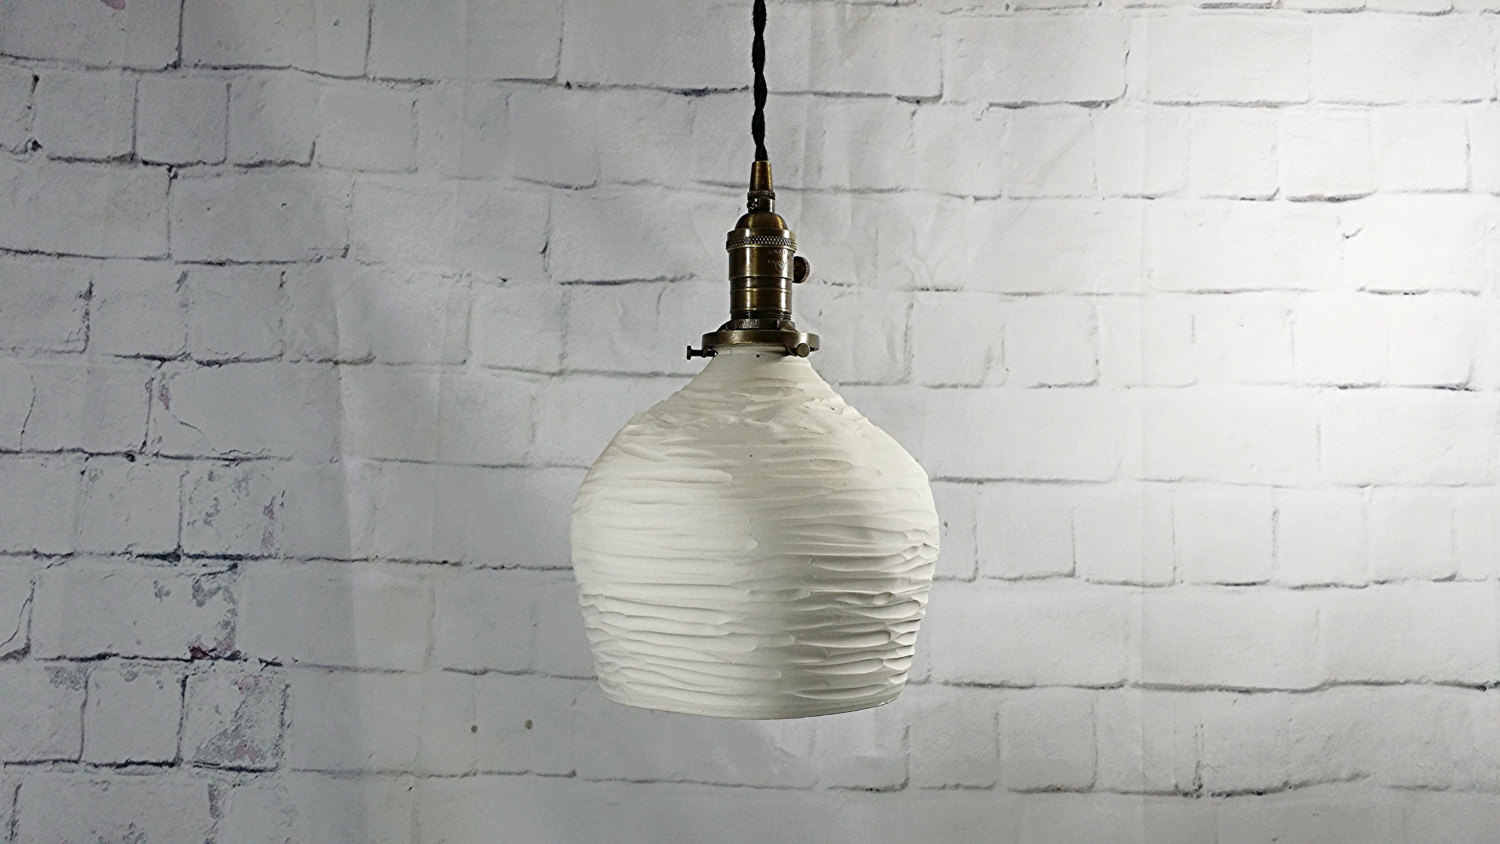 Porcelain pendant light from Etsy shop L&S Handcrafted Lighting